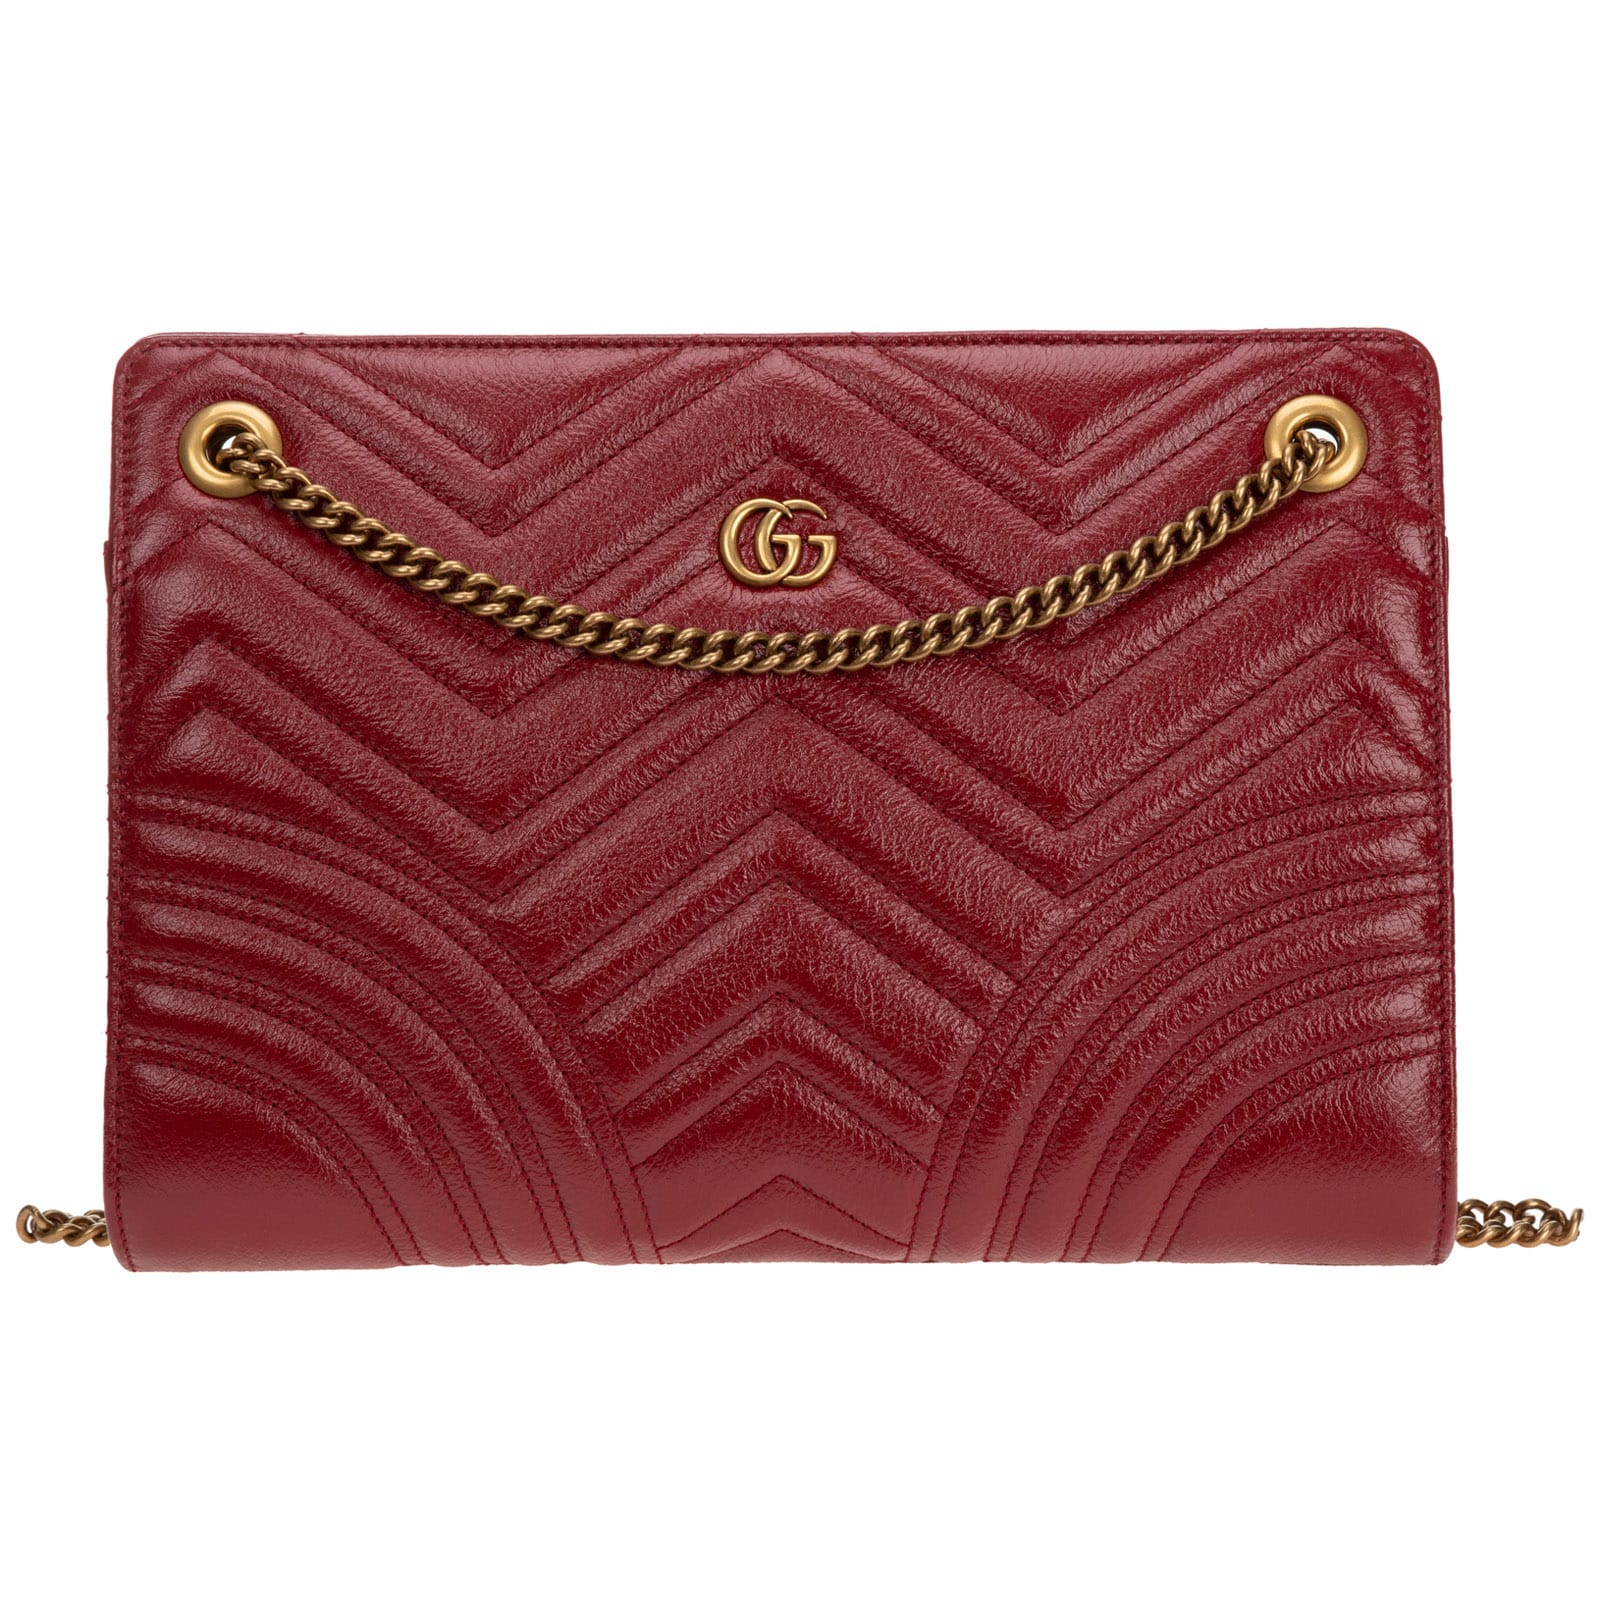 Gucci Marmont Shoulder Bag In Rosso